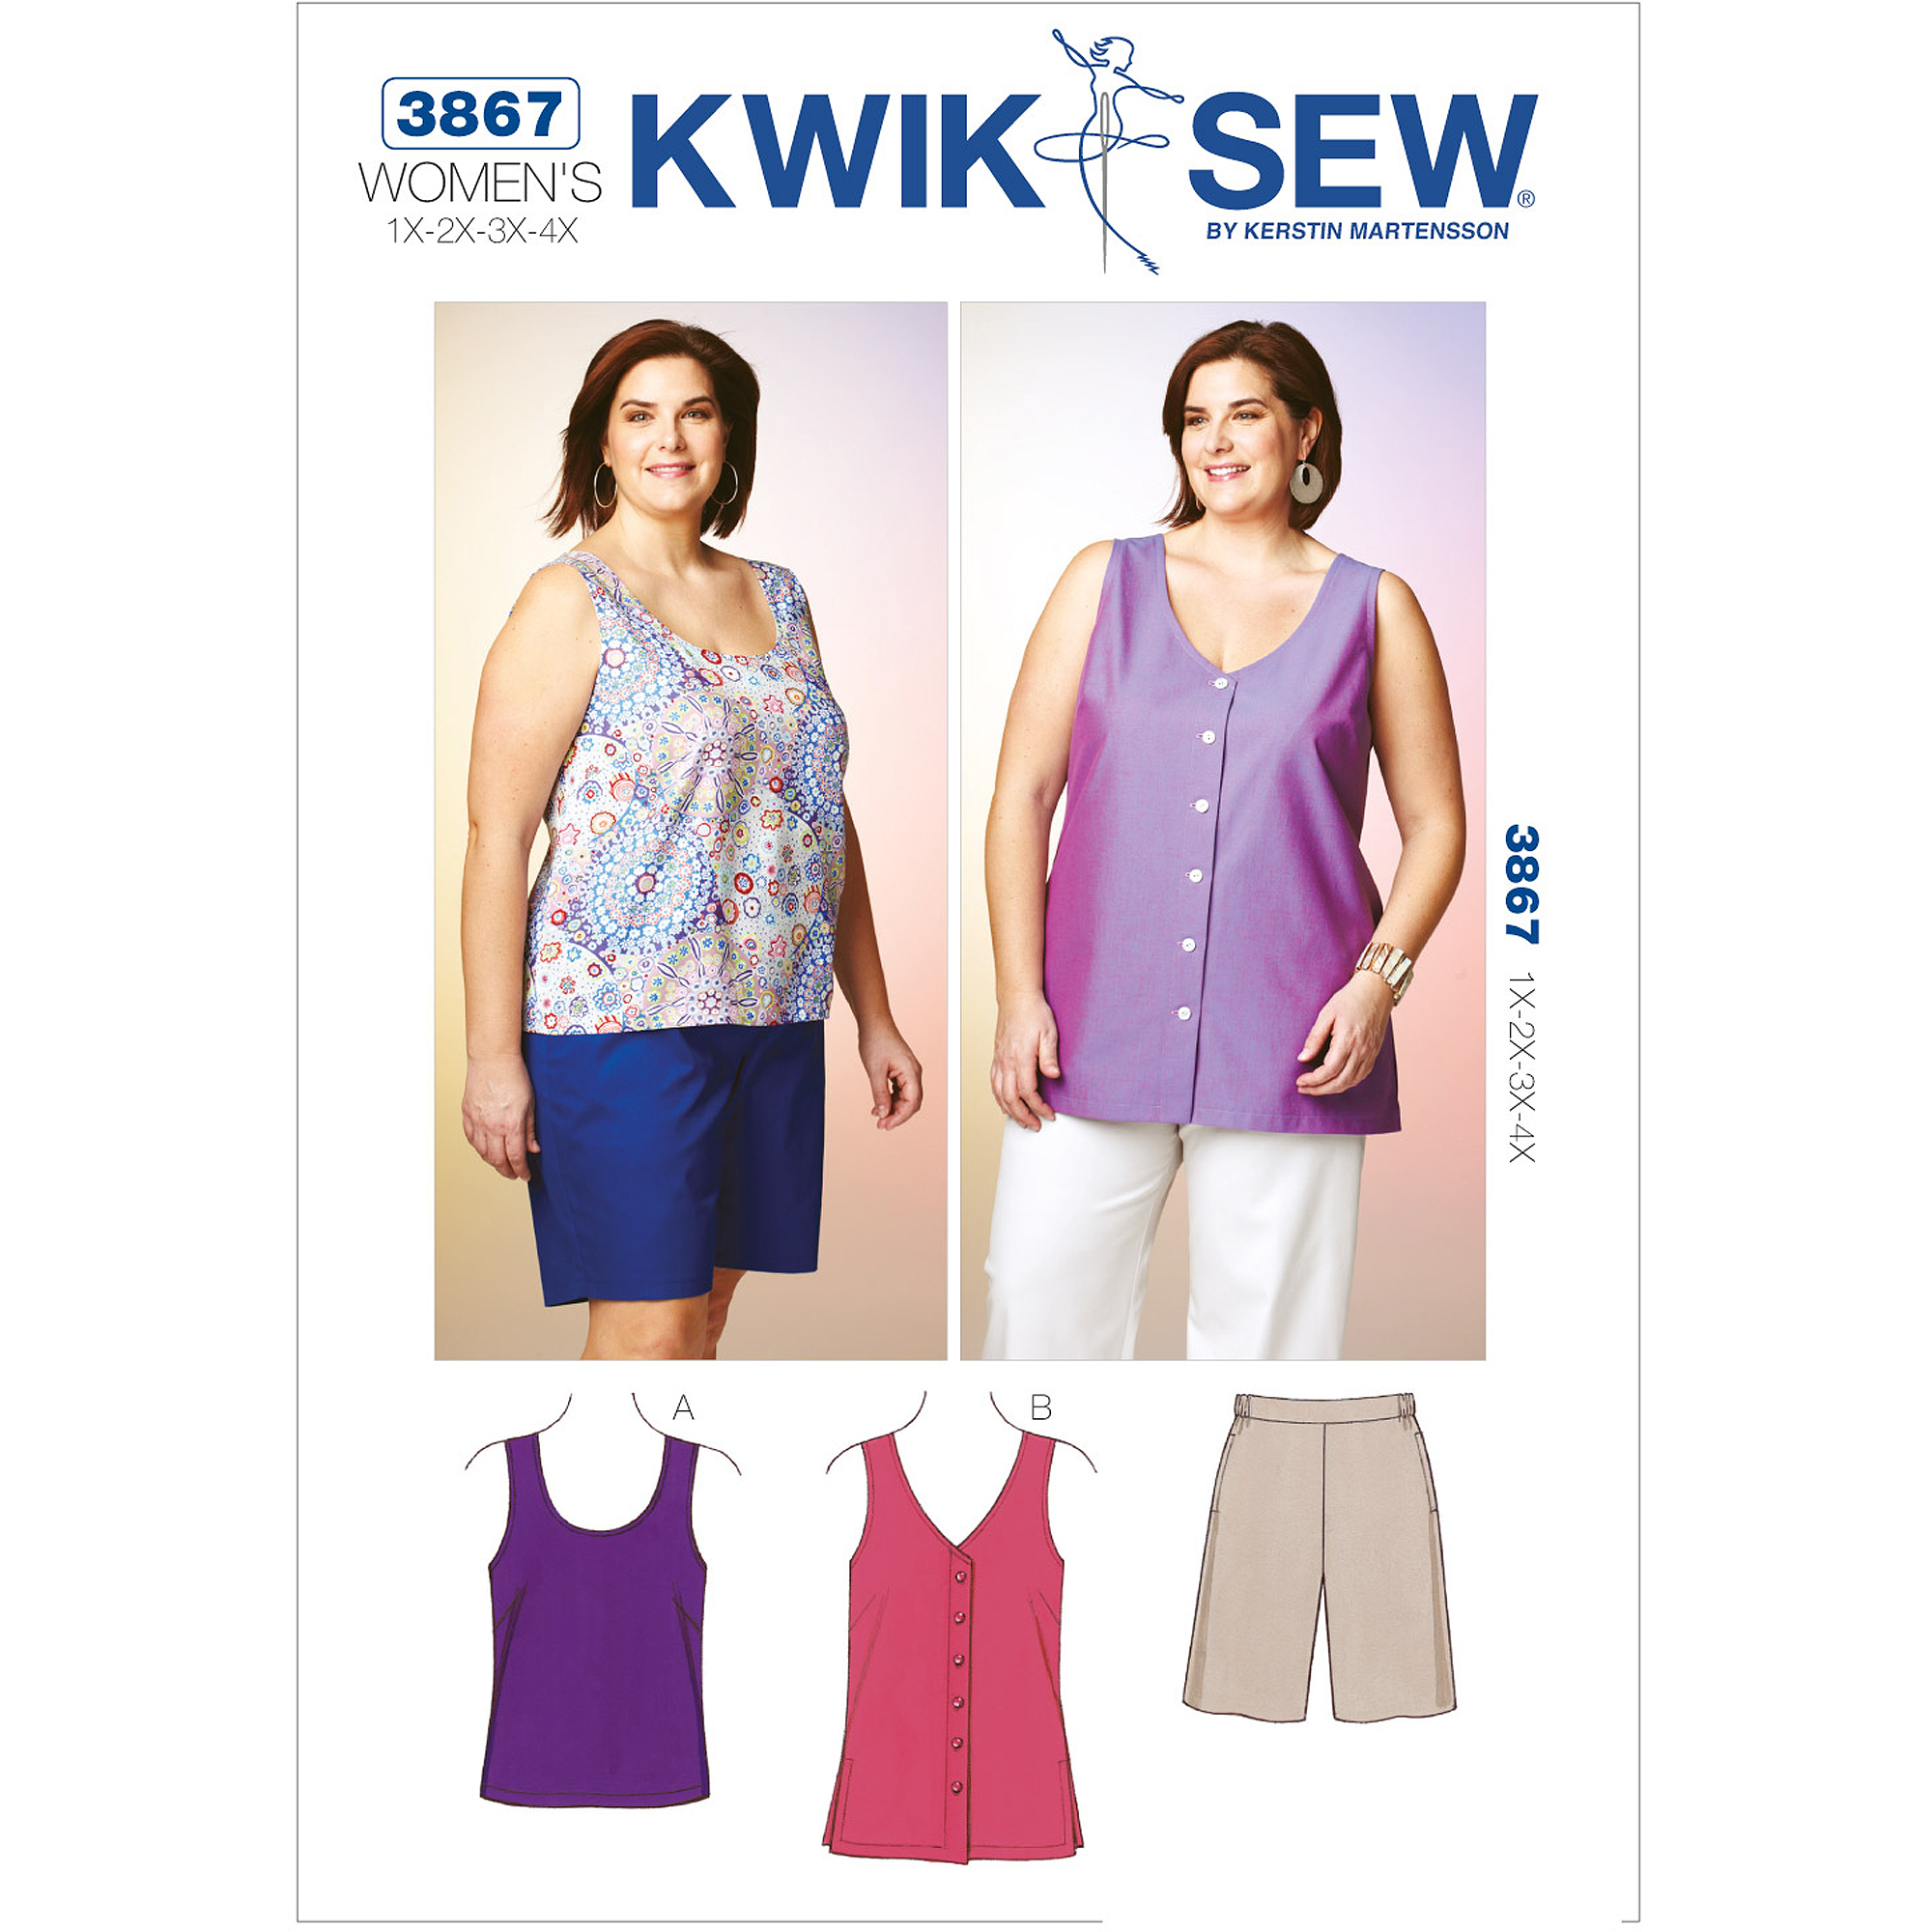 Kwik Sew Pattern Shorts, Top and Tunic, (1X, 2X, 3X, 4X)